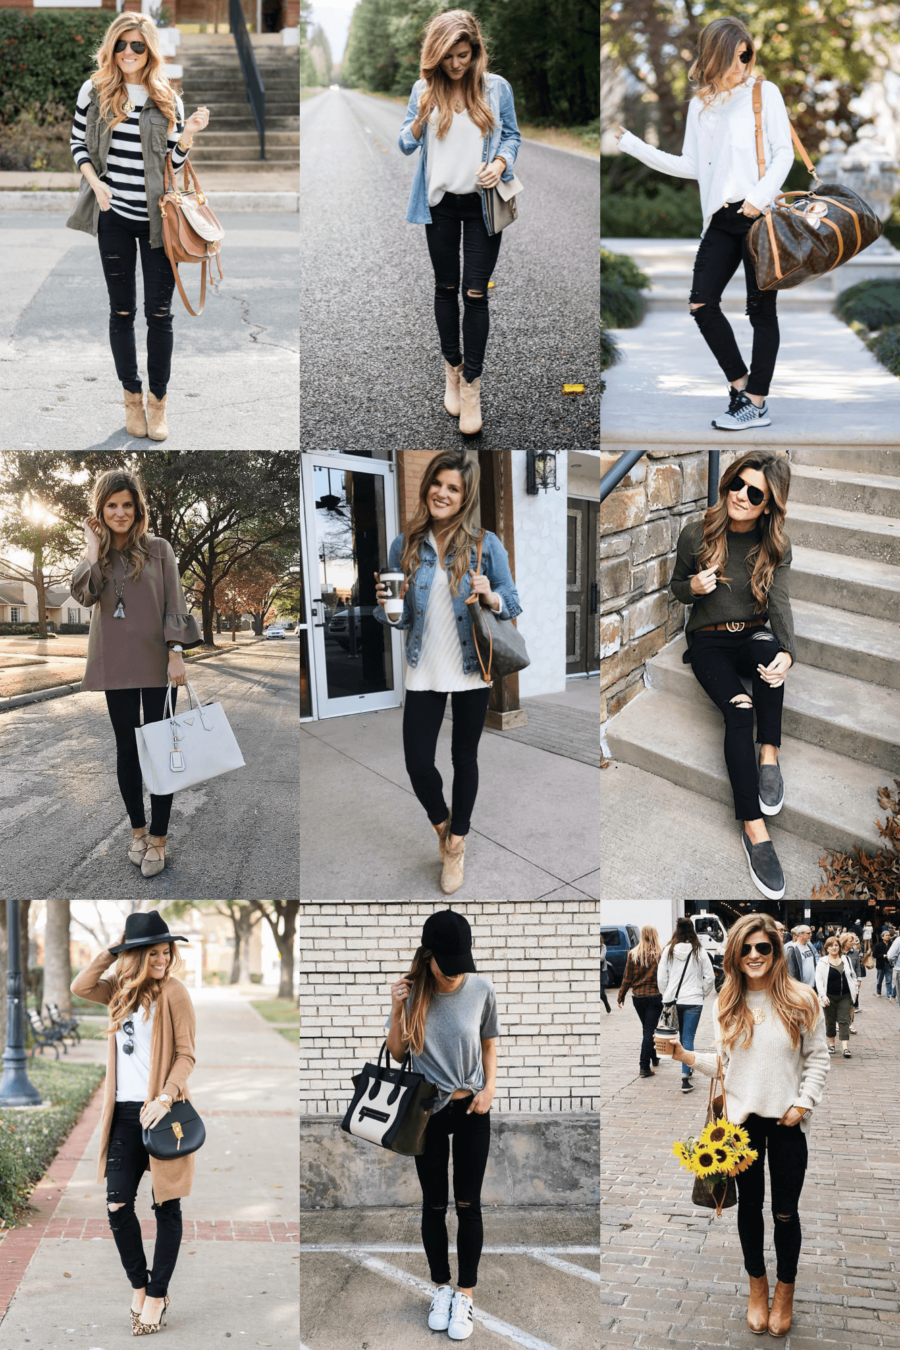 bc6443997e3 What to wear with black jeans - 30+ Black Jeans Outfit Ideas